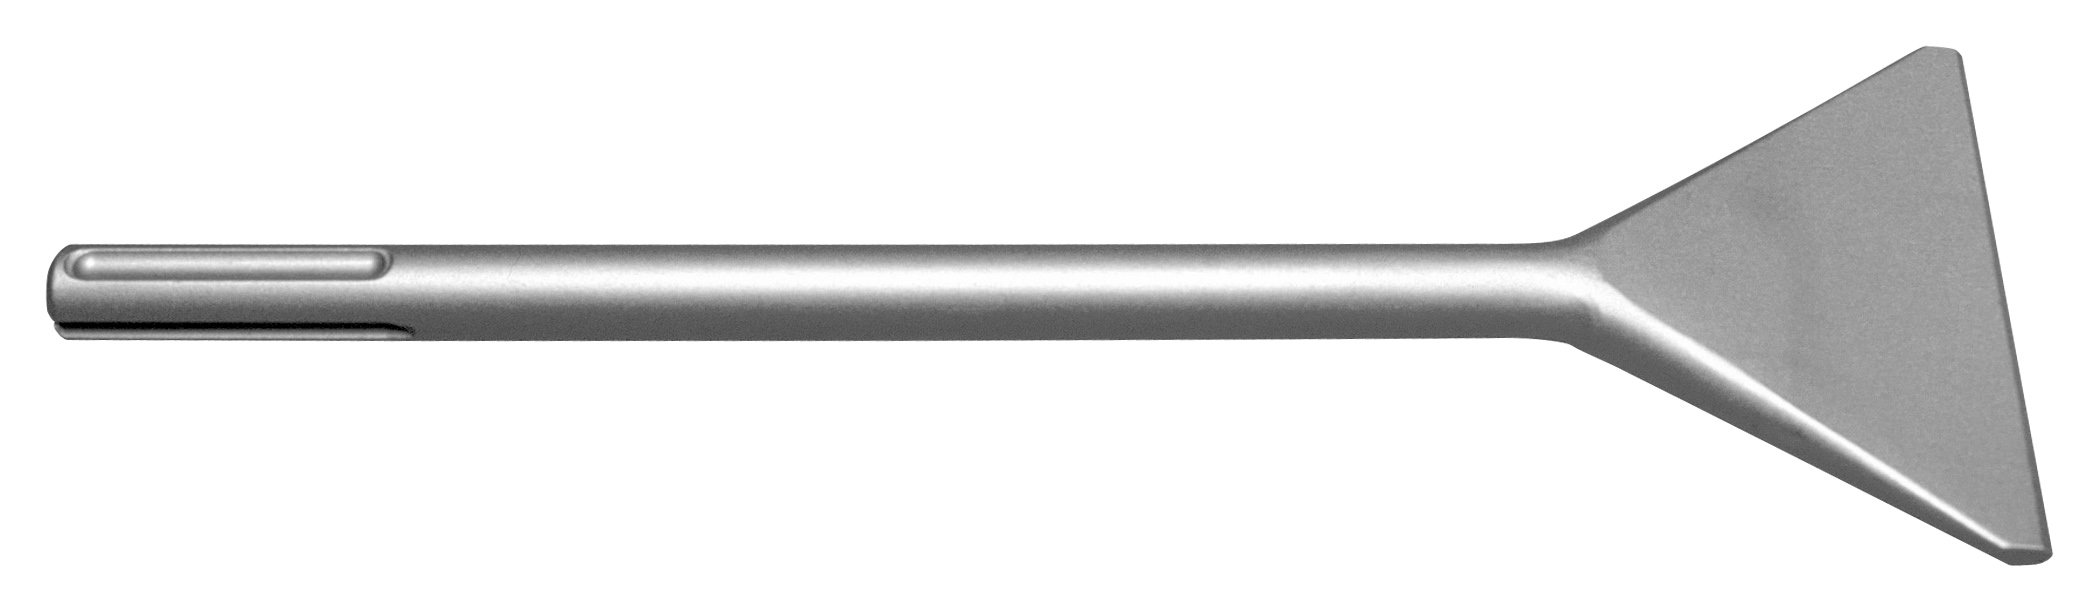 Champion Chisel, 12-Inch Long, 4-Inch Wide Jumbo SDS-MAX Flat Chisel, Double Beveled Working Edge